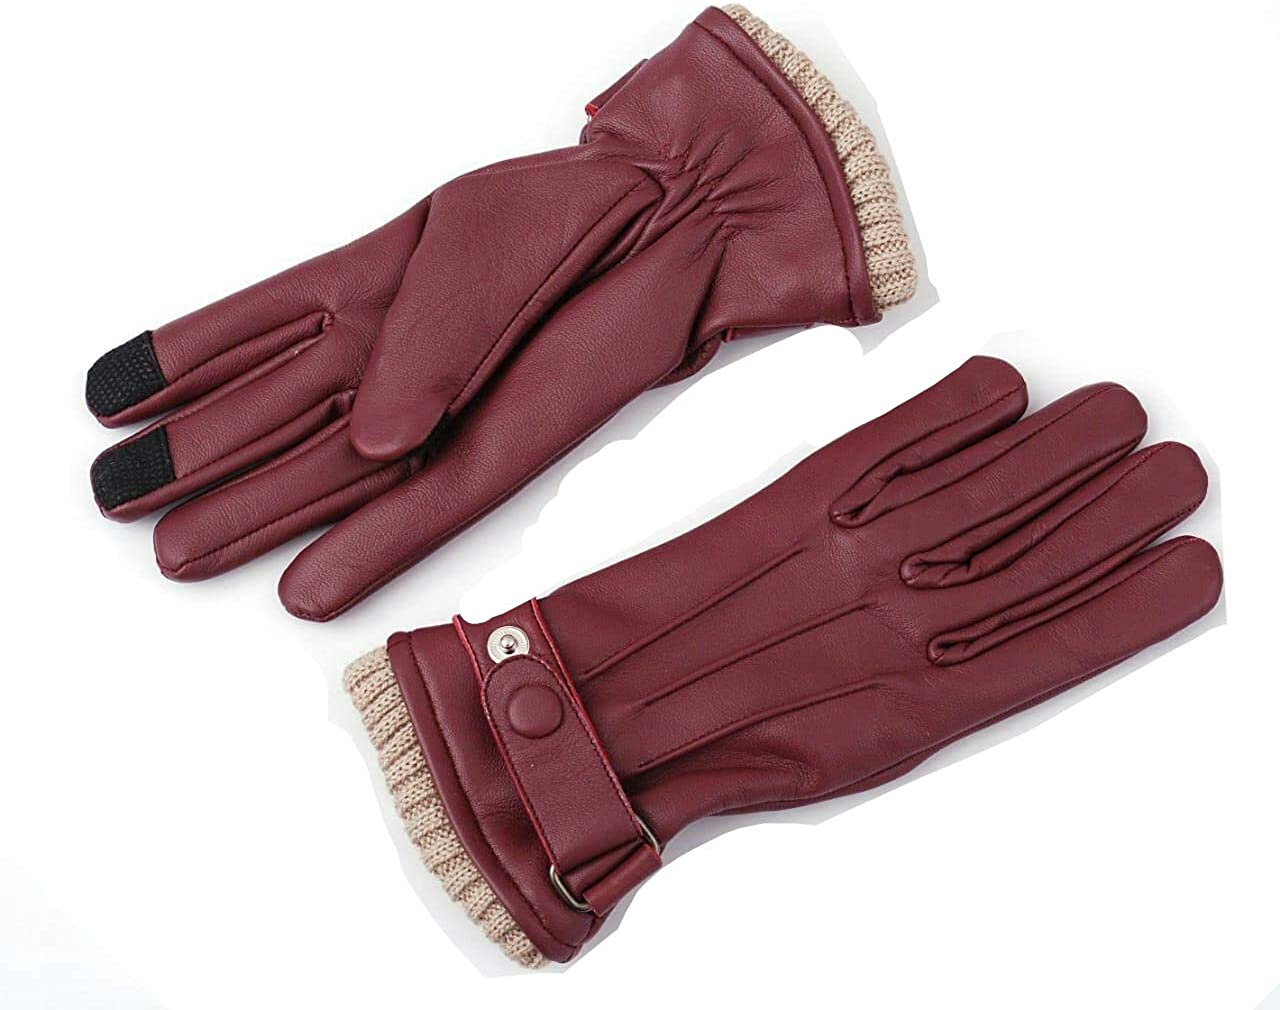 Women Genuine Sheep Leather Winter Dress Driving Riding Texting Gloves with Wool and Fleece Lining (Burgundy, X-Large)